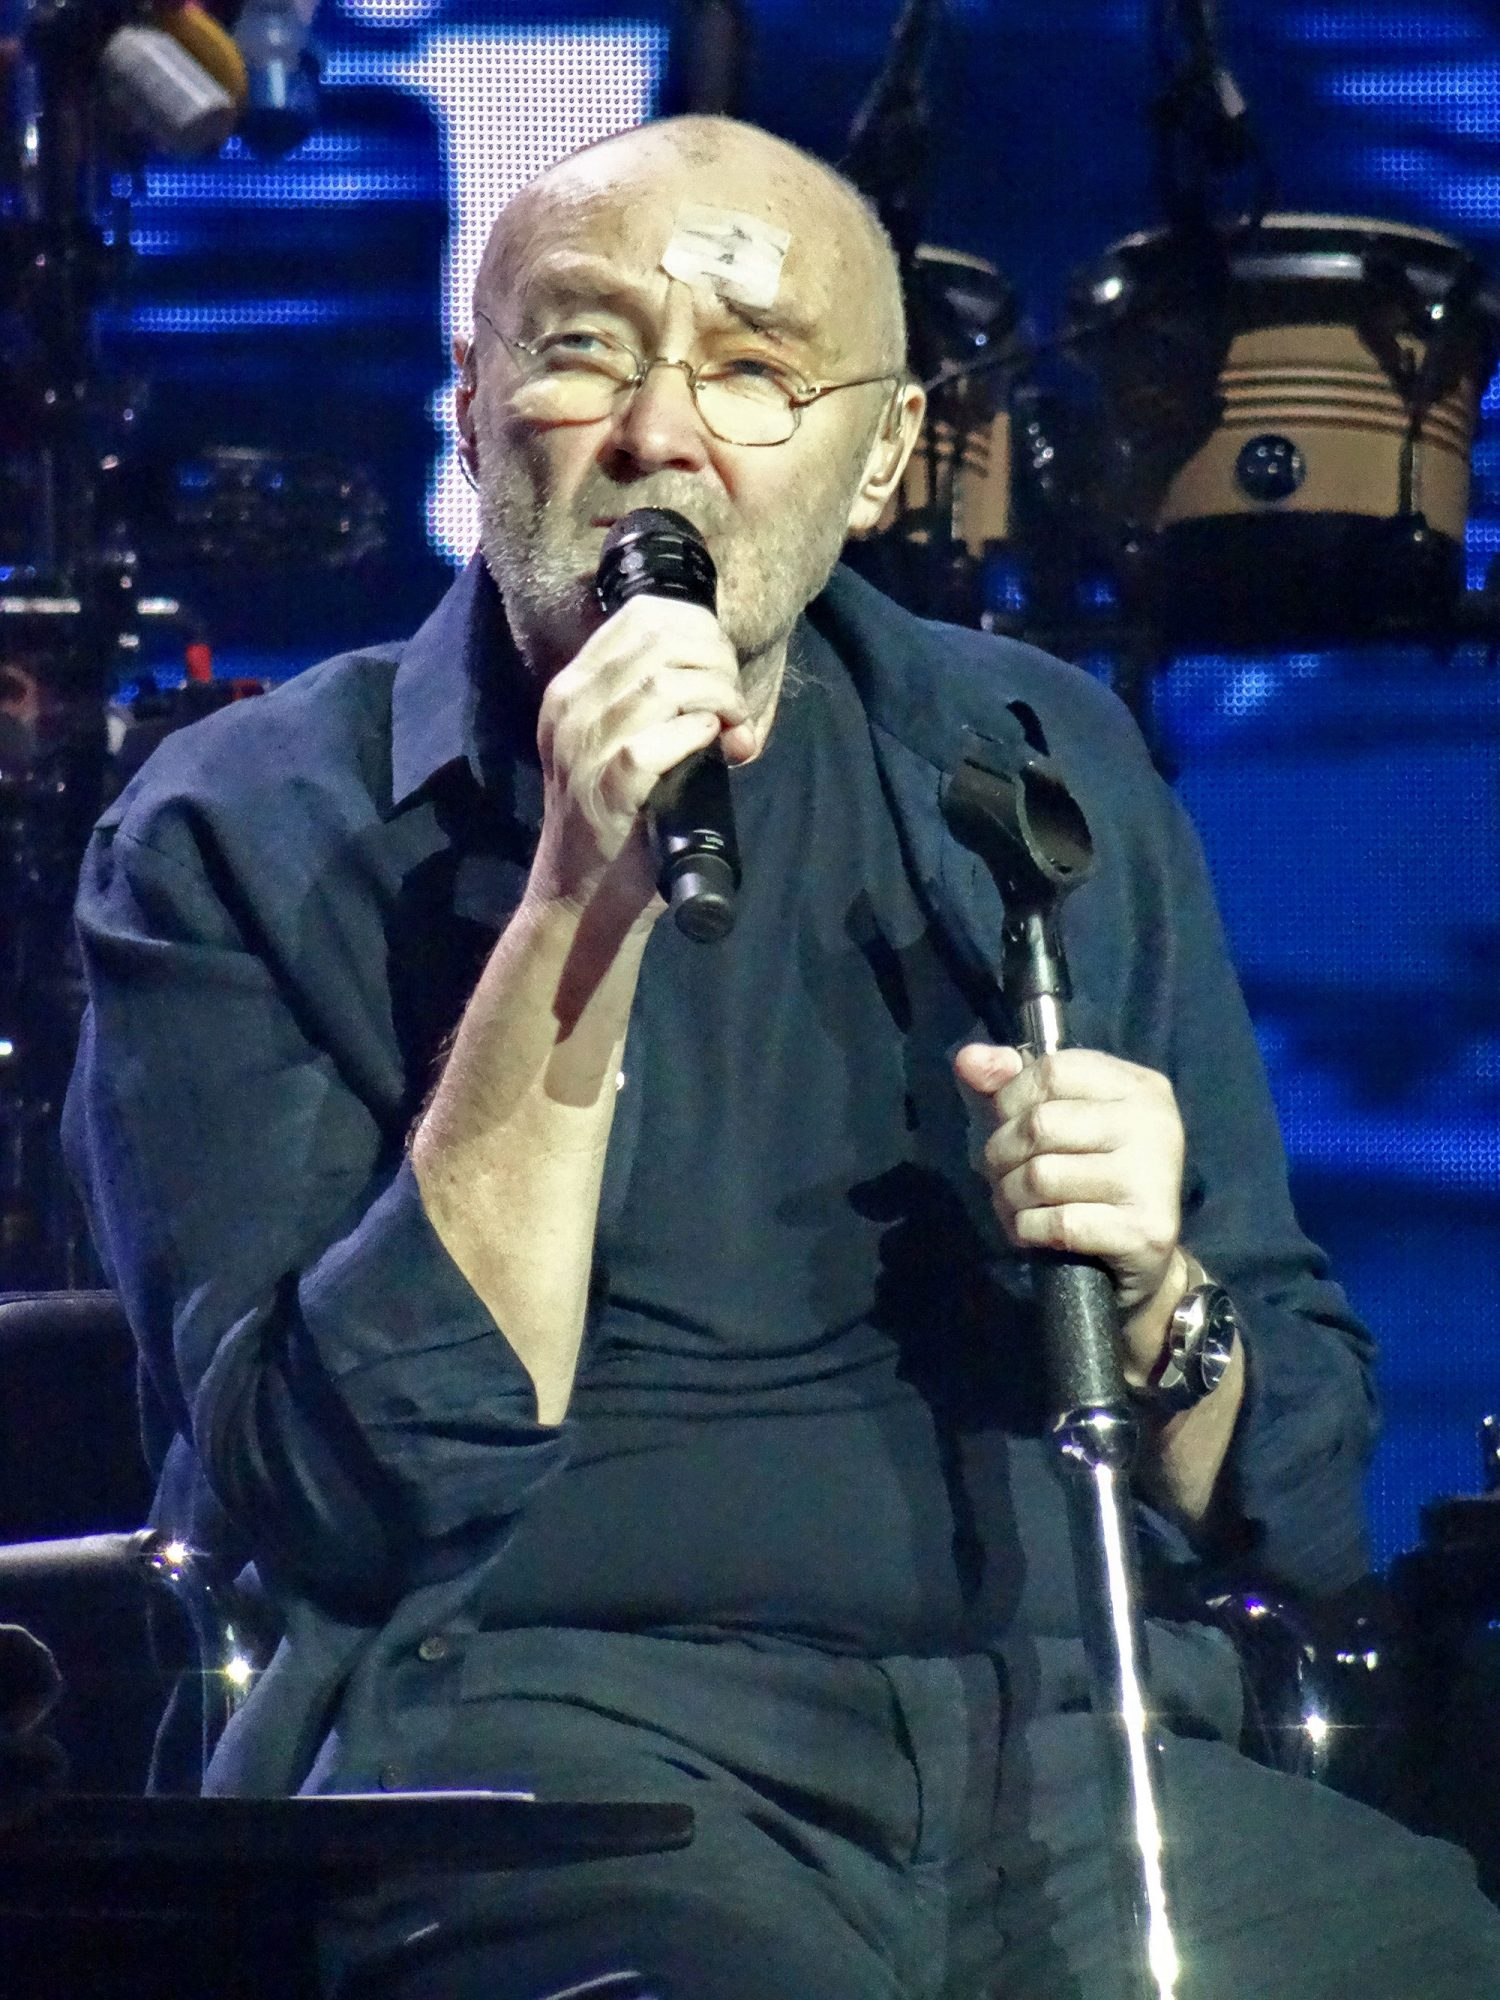 Phil Collins in concert at Lanxess Arena, Cologne ,Germany - 11 Jun 2017